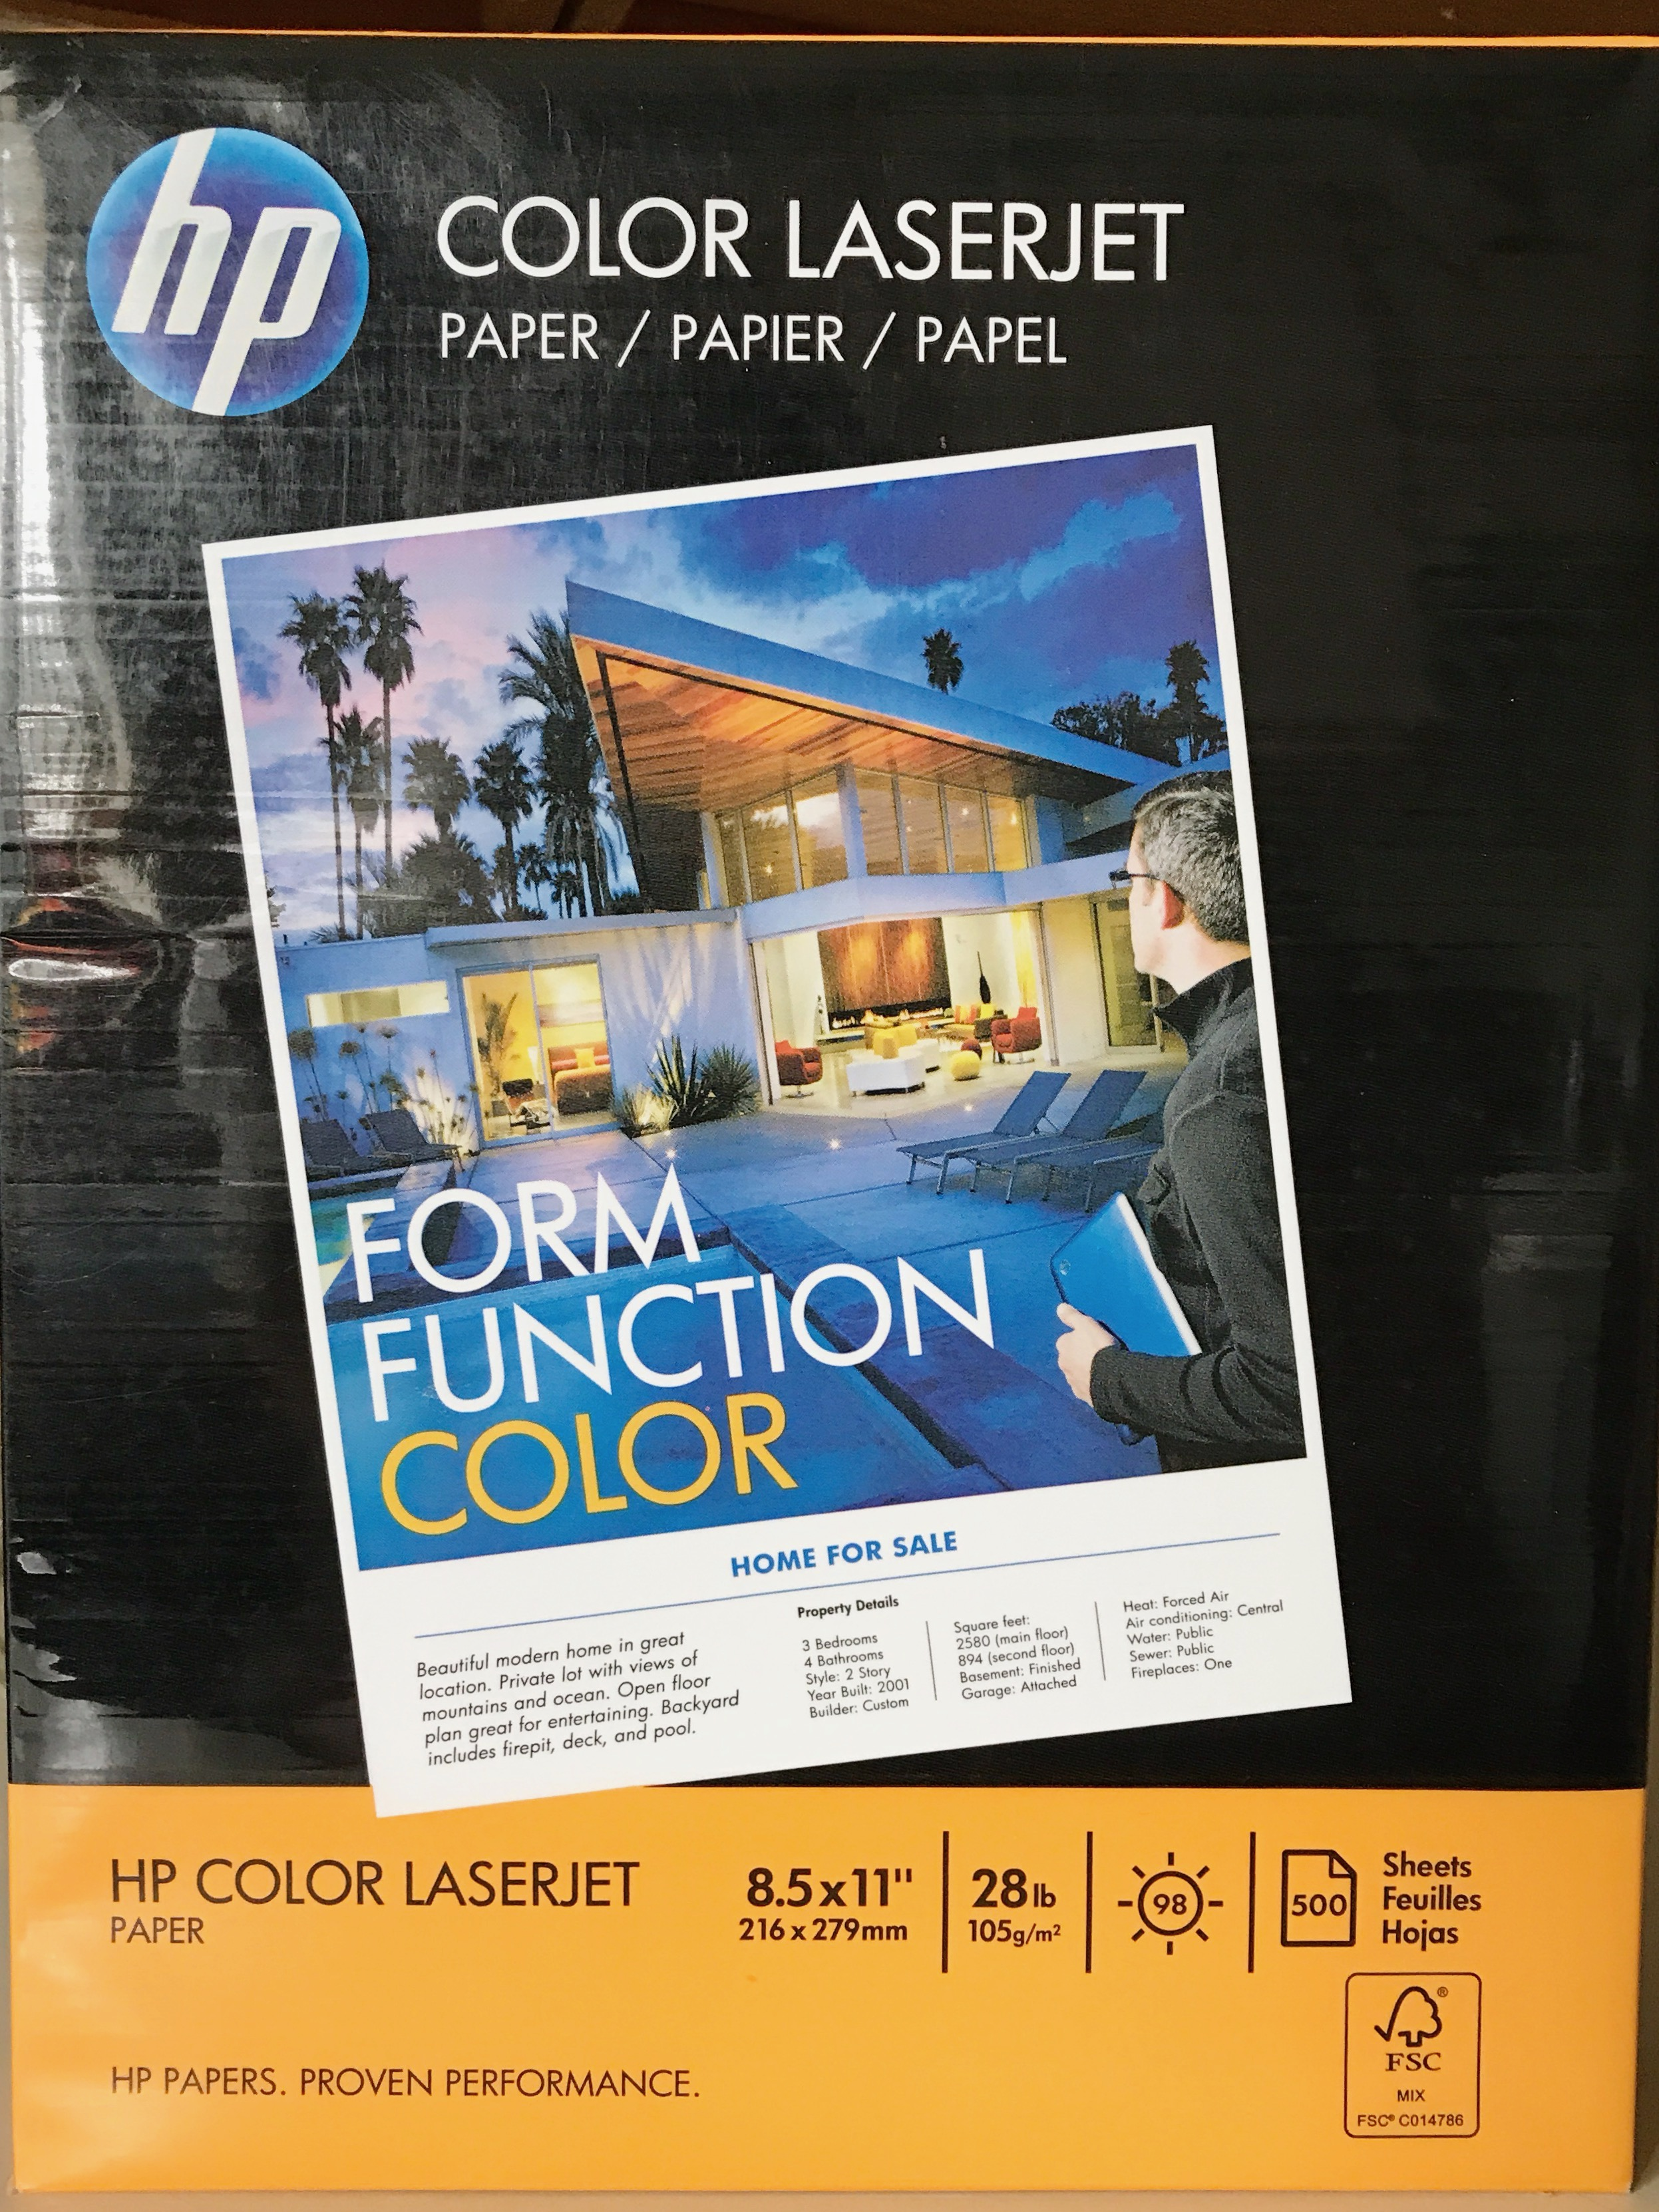 HP Laserjet28 - This paper can be found on amazon.com, but is no longer being produced as far as I know.